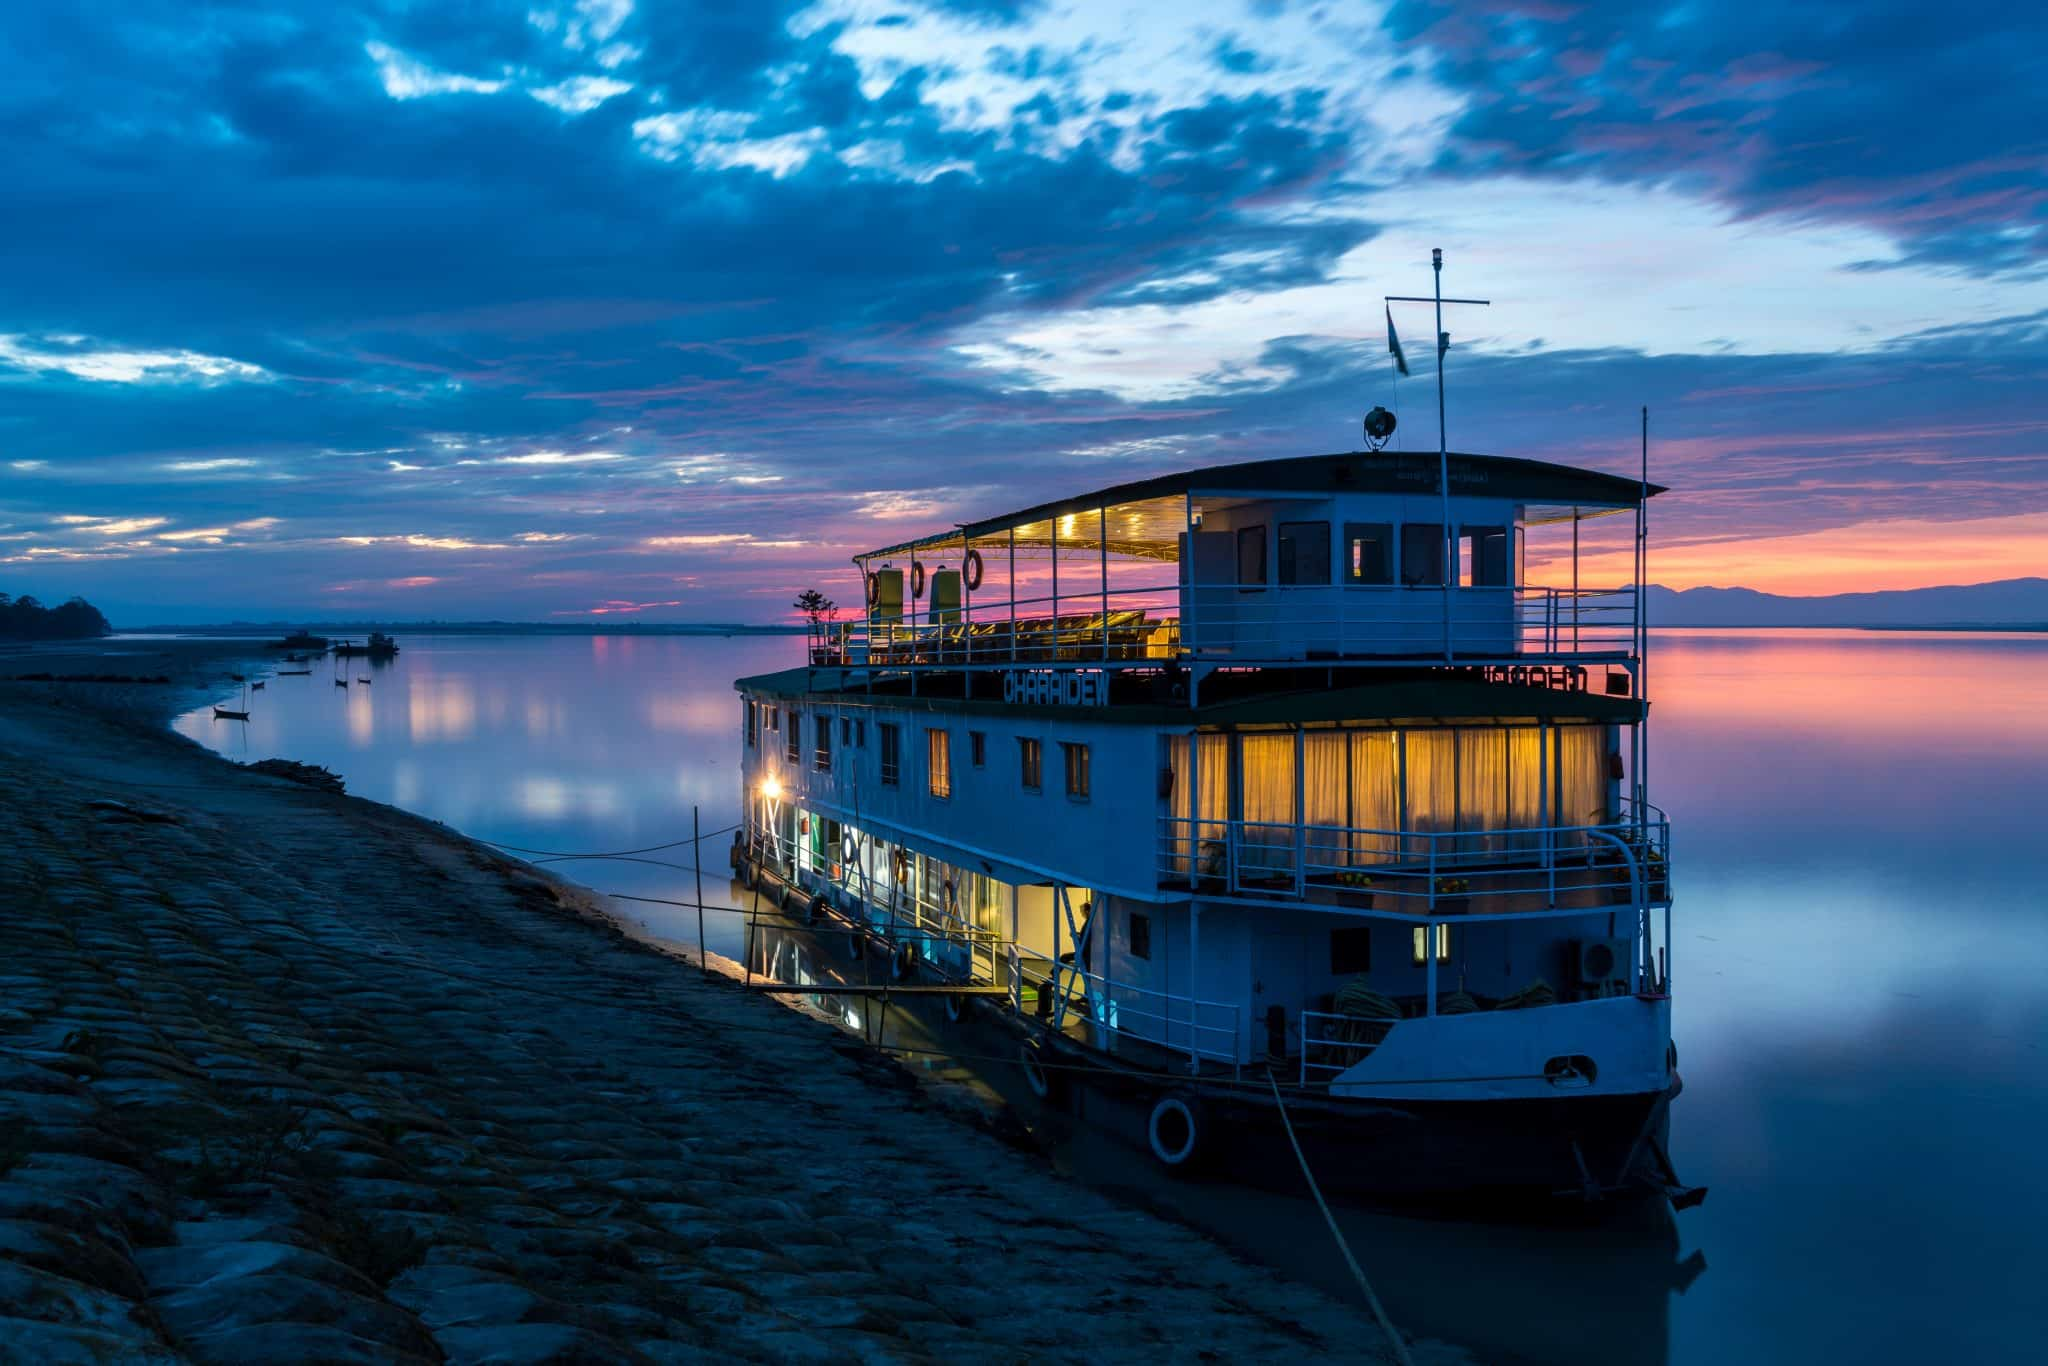 River cruise on the Brahmaputra with Assam Bengal Navigation - Lost With Purpose travel blog